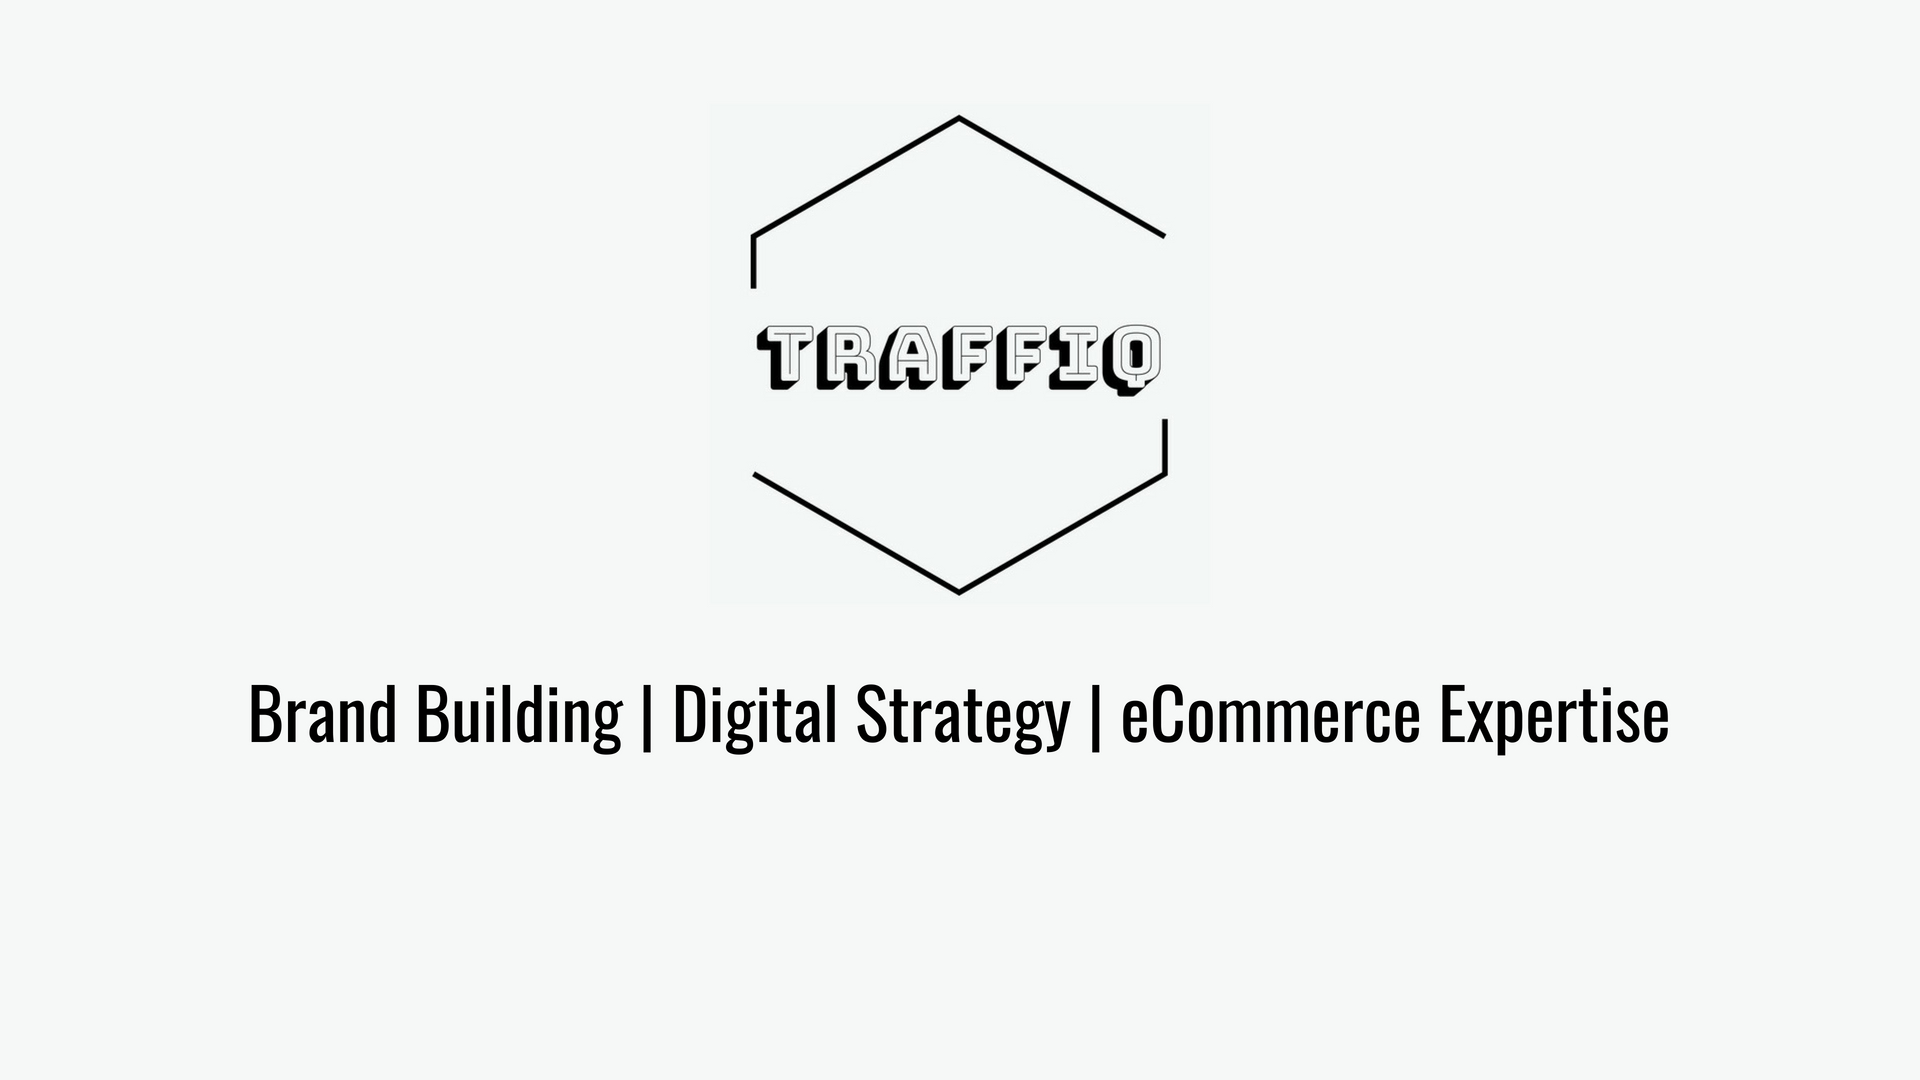 | Brand Building | Digital Strategy | eCommerce Expertise |-10